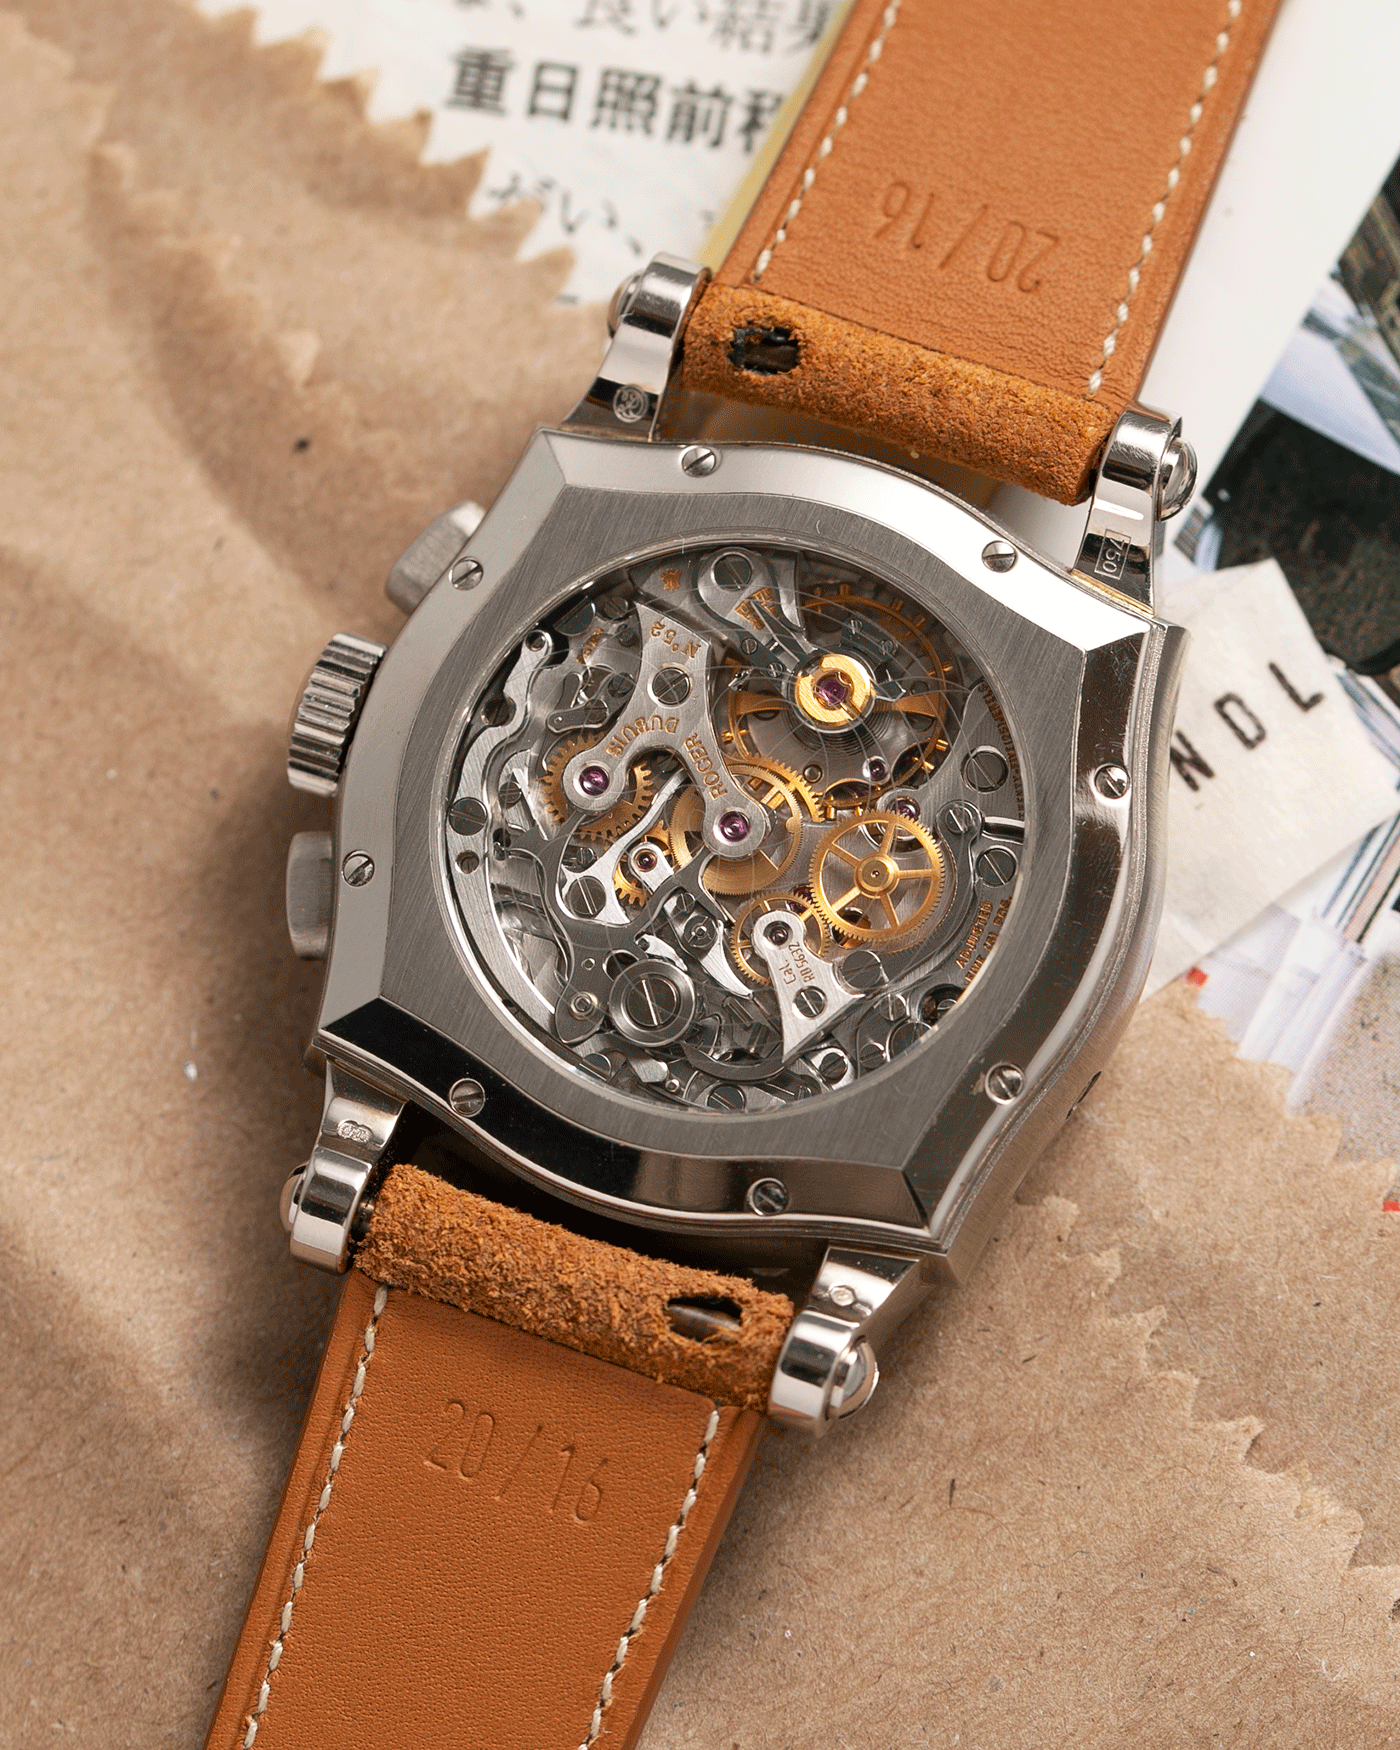 Brand: Roger Dubuis Year: 2000's Model: Sympathie 37 Perpetual Chronograph Material: 18k White Gold Movement: Cal RD 5637 Case Diameter: 37mm Strap: Nostime Sand Tan Suede Calf with 18k White Gold Roger Dubuis Tang Buckle